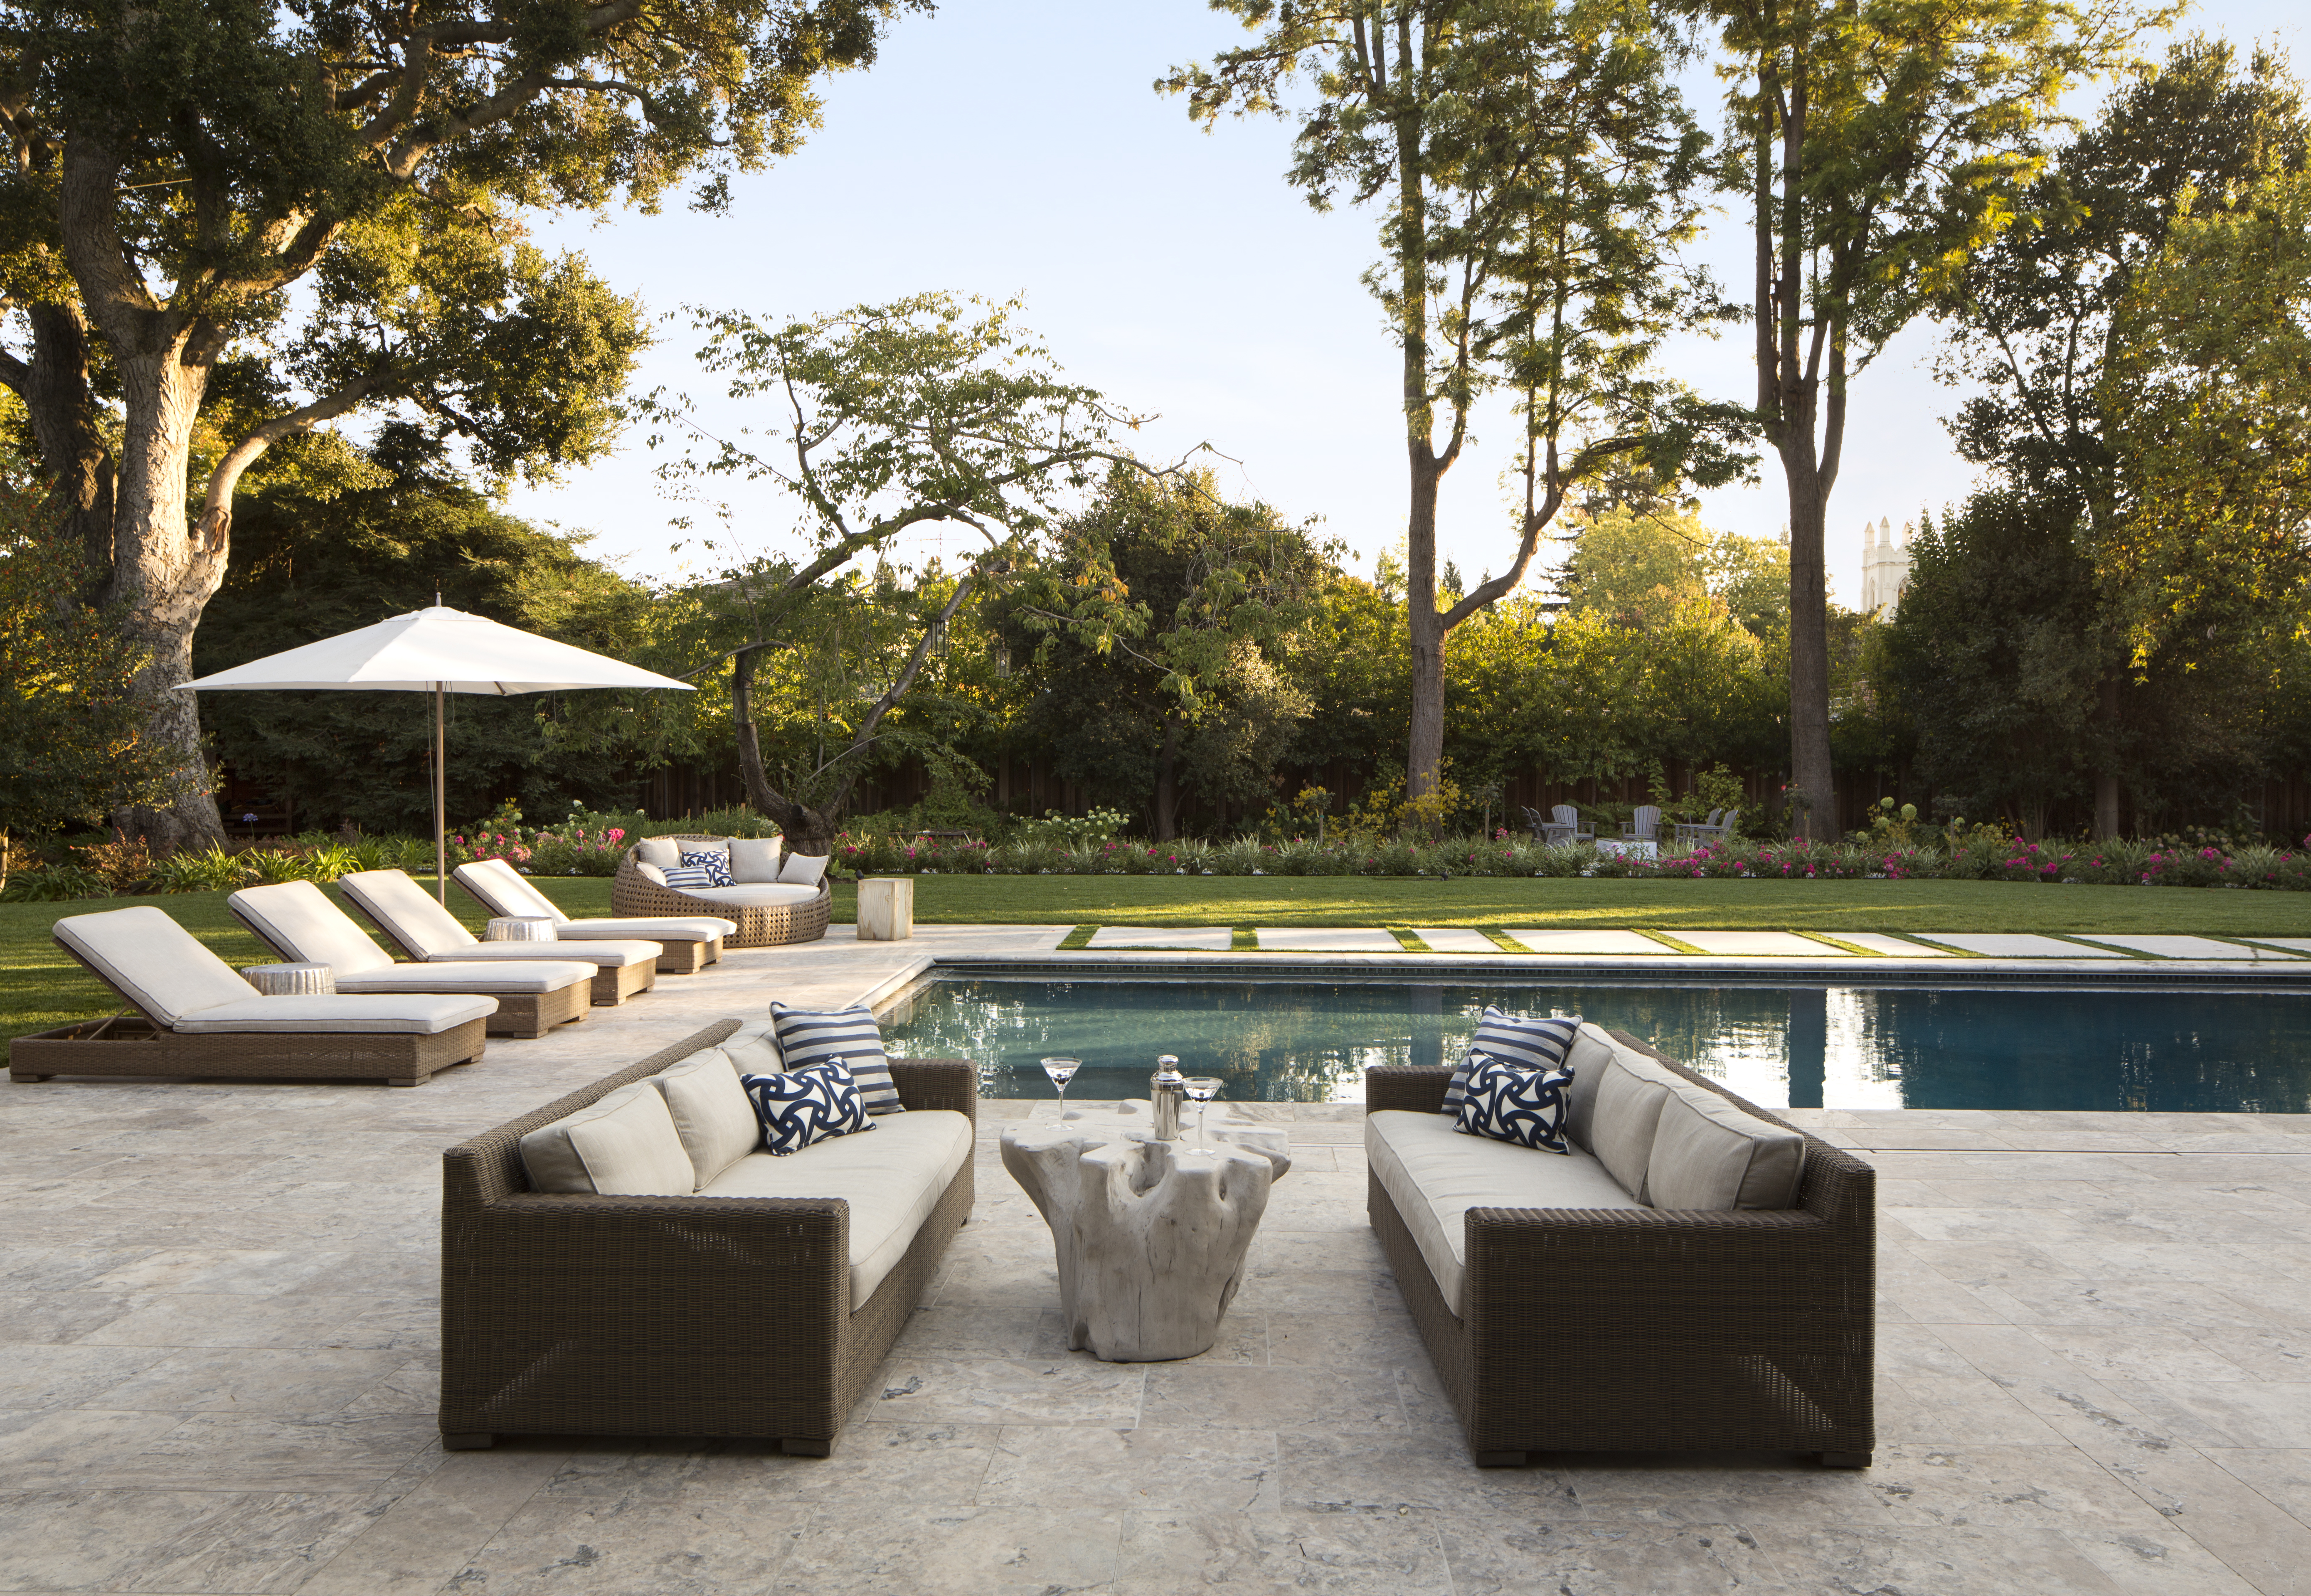 While outside, you can lounge in one of many seating areas — whether you prefer the cream sofas, the lounge chairs, orthe cozy daybed.